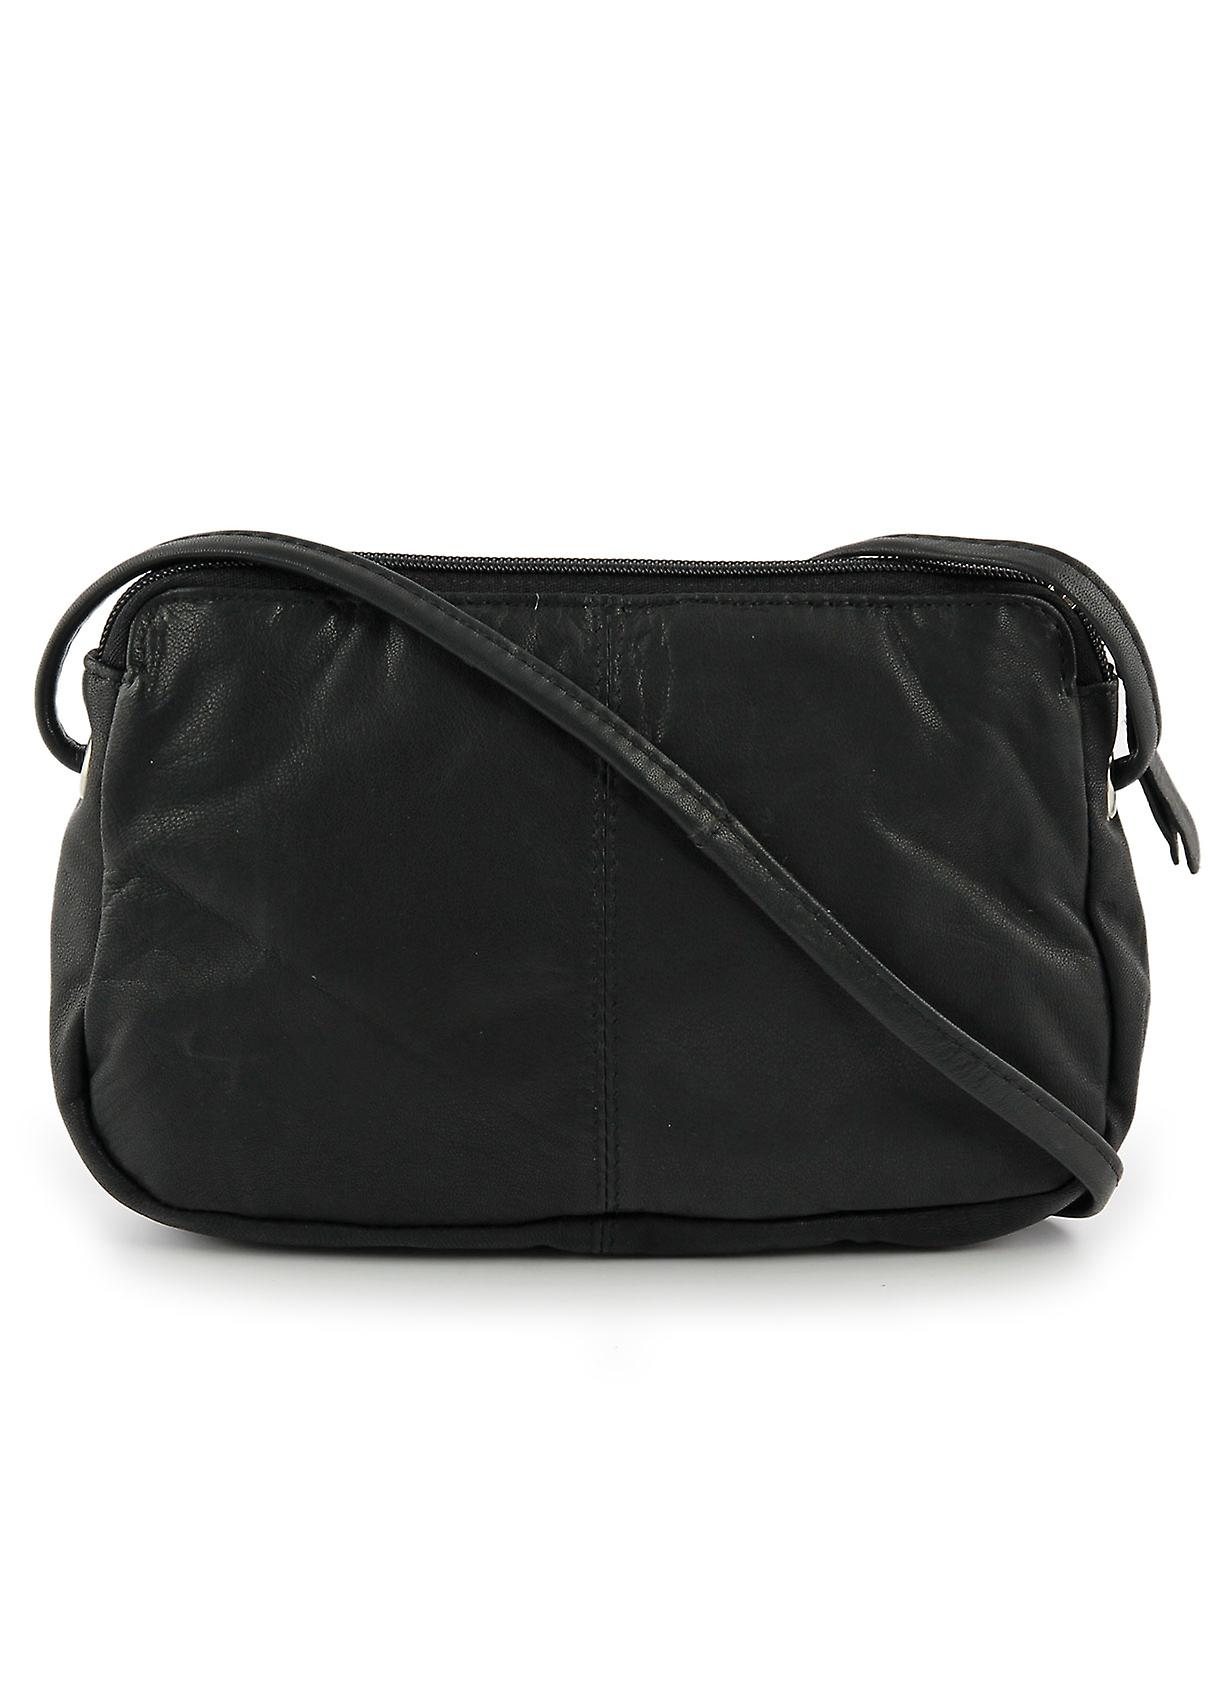 Rubi II Small Leather Cross Body Bag in Black